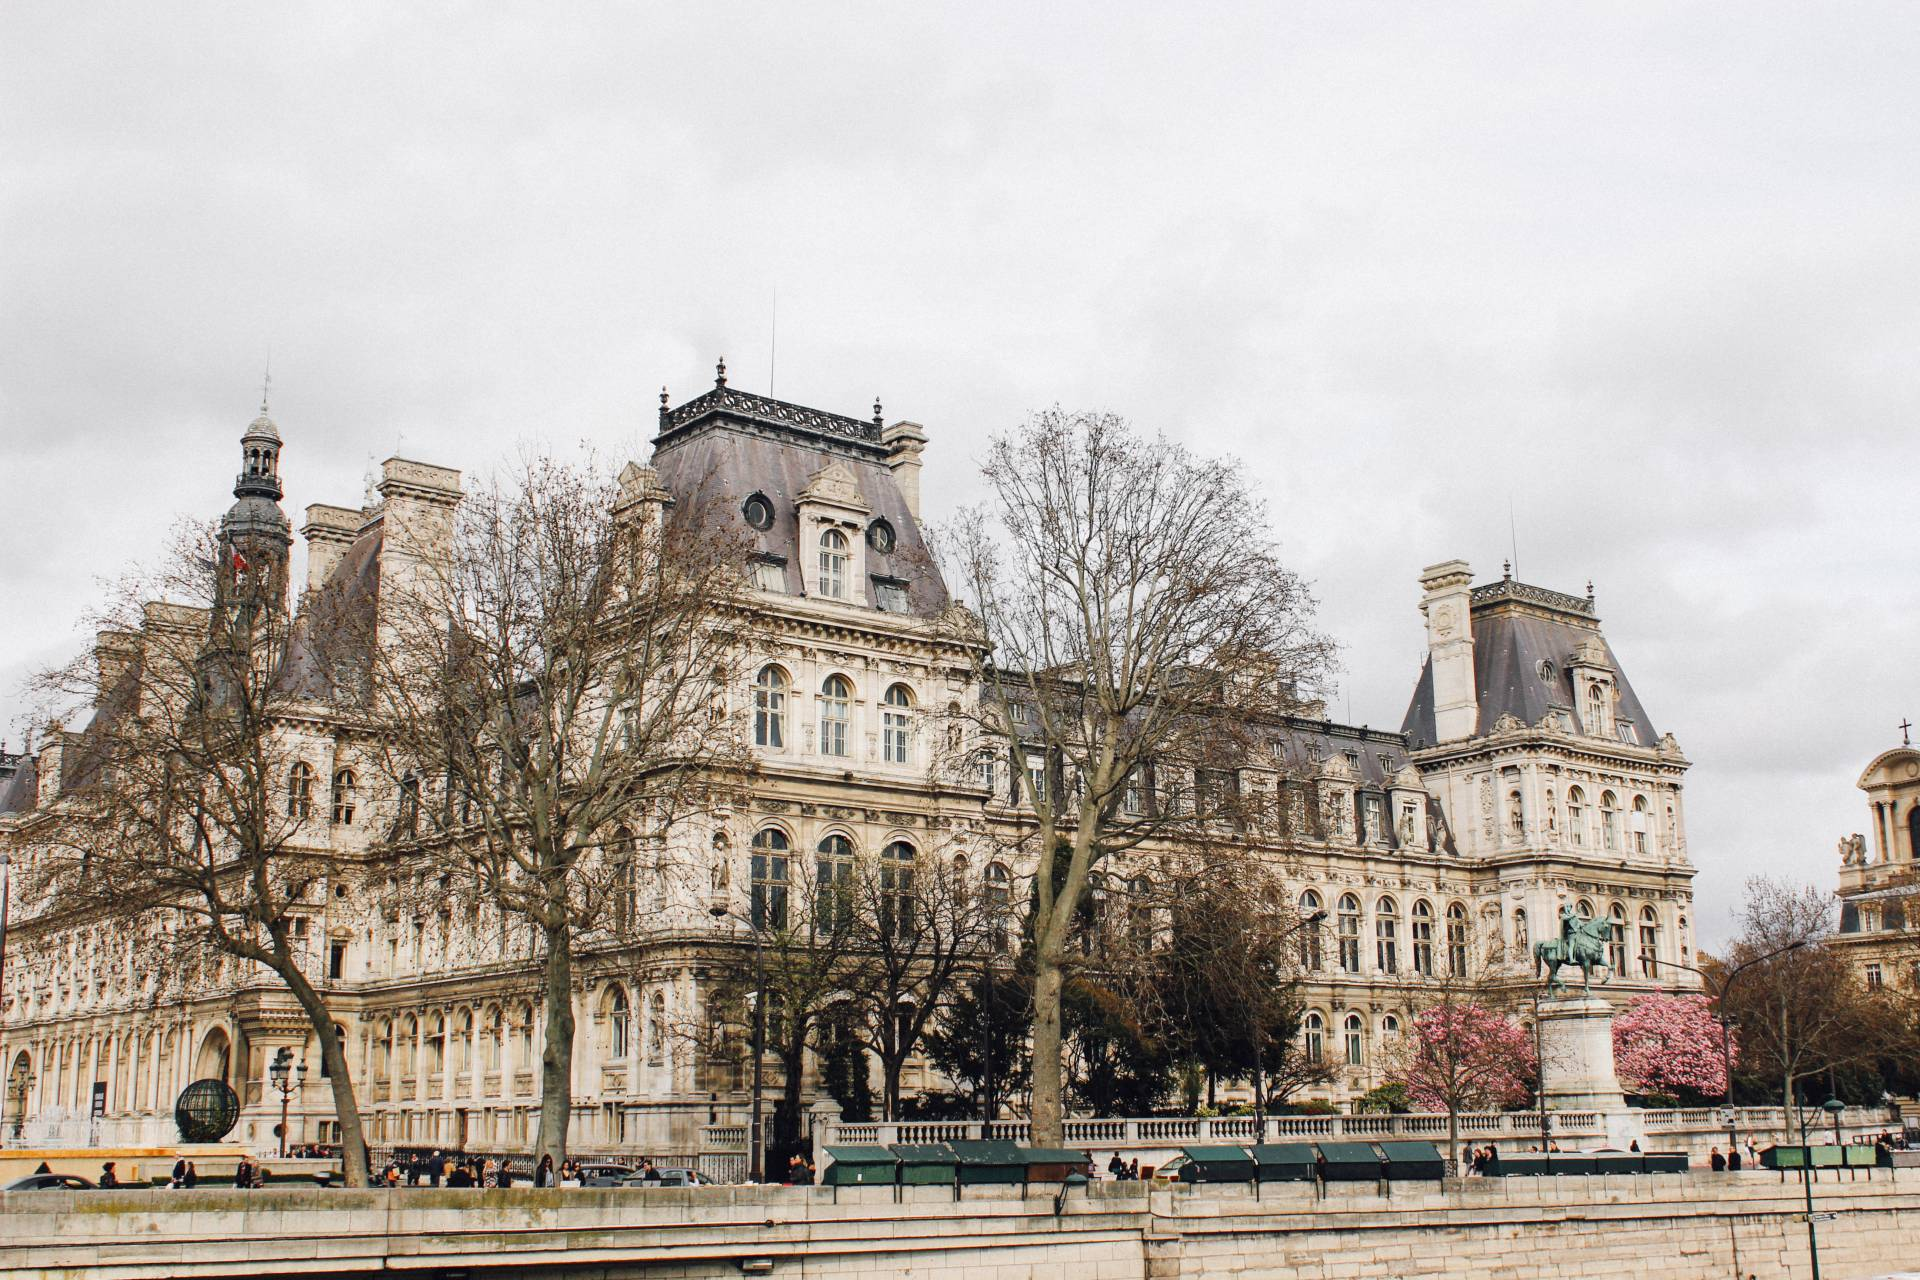 Walking along the streets of Paris, France